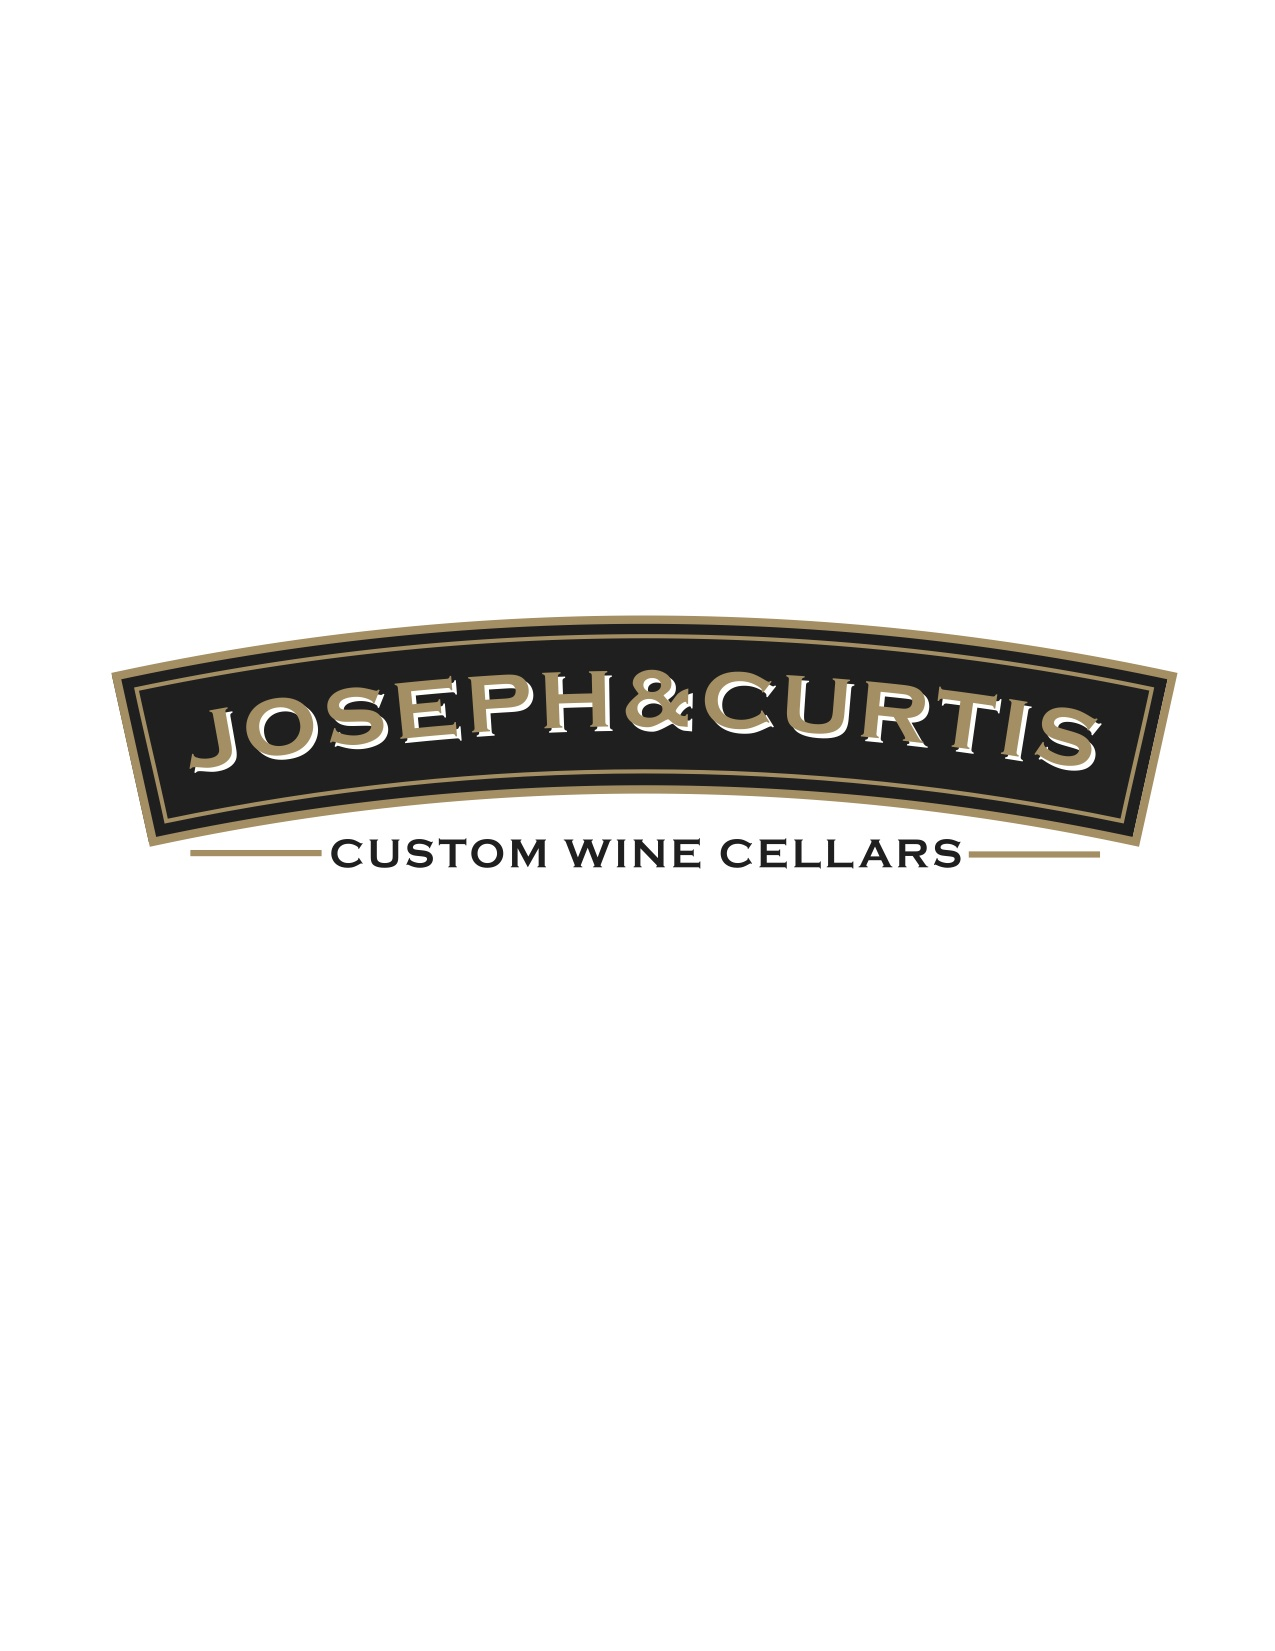 Joseph & Curtis Custom Wine Cellars - Joseph & Curtis began over a glass of wine and too little volatility in the stock market. Joe Kline and Curt Dahl were both traders. Joe began trading on the floor of the CME, where he met Curtis in 1990. In his off time, he had an incredible passion for design. On many days, after a stressful 7 hours of trading, you would find Joe unwinding in his garage/workshop or creating designs on his computer.Curtis, on the other hand, got the trading